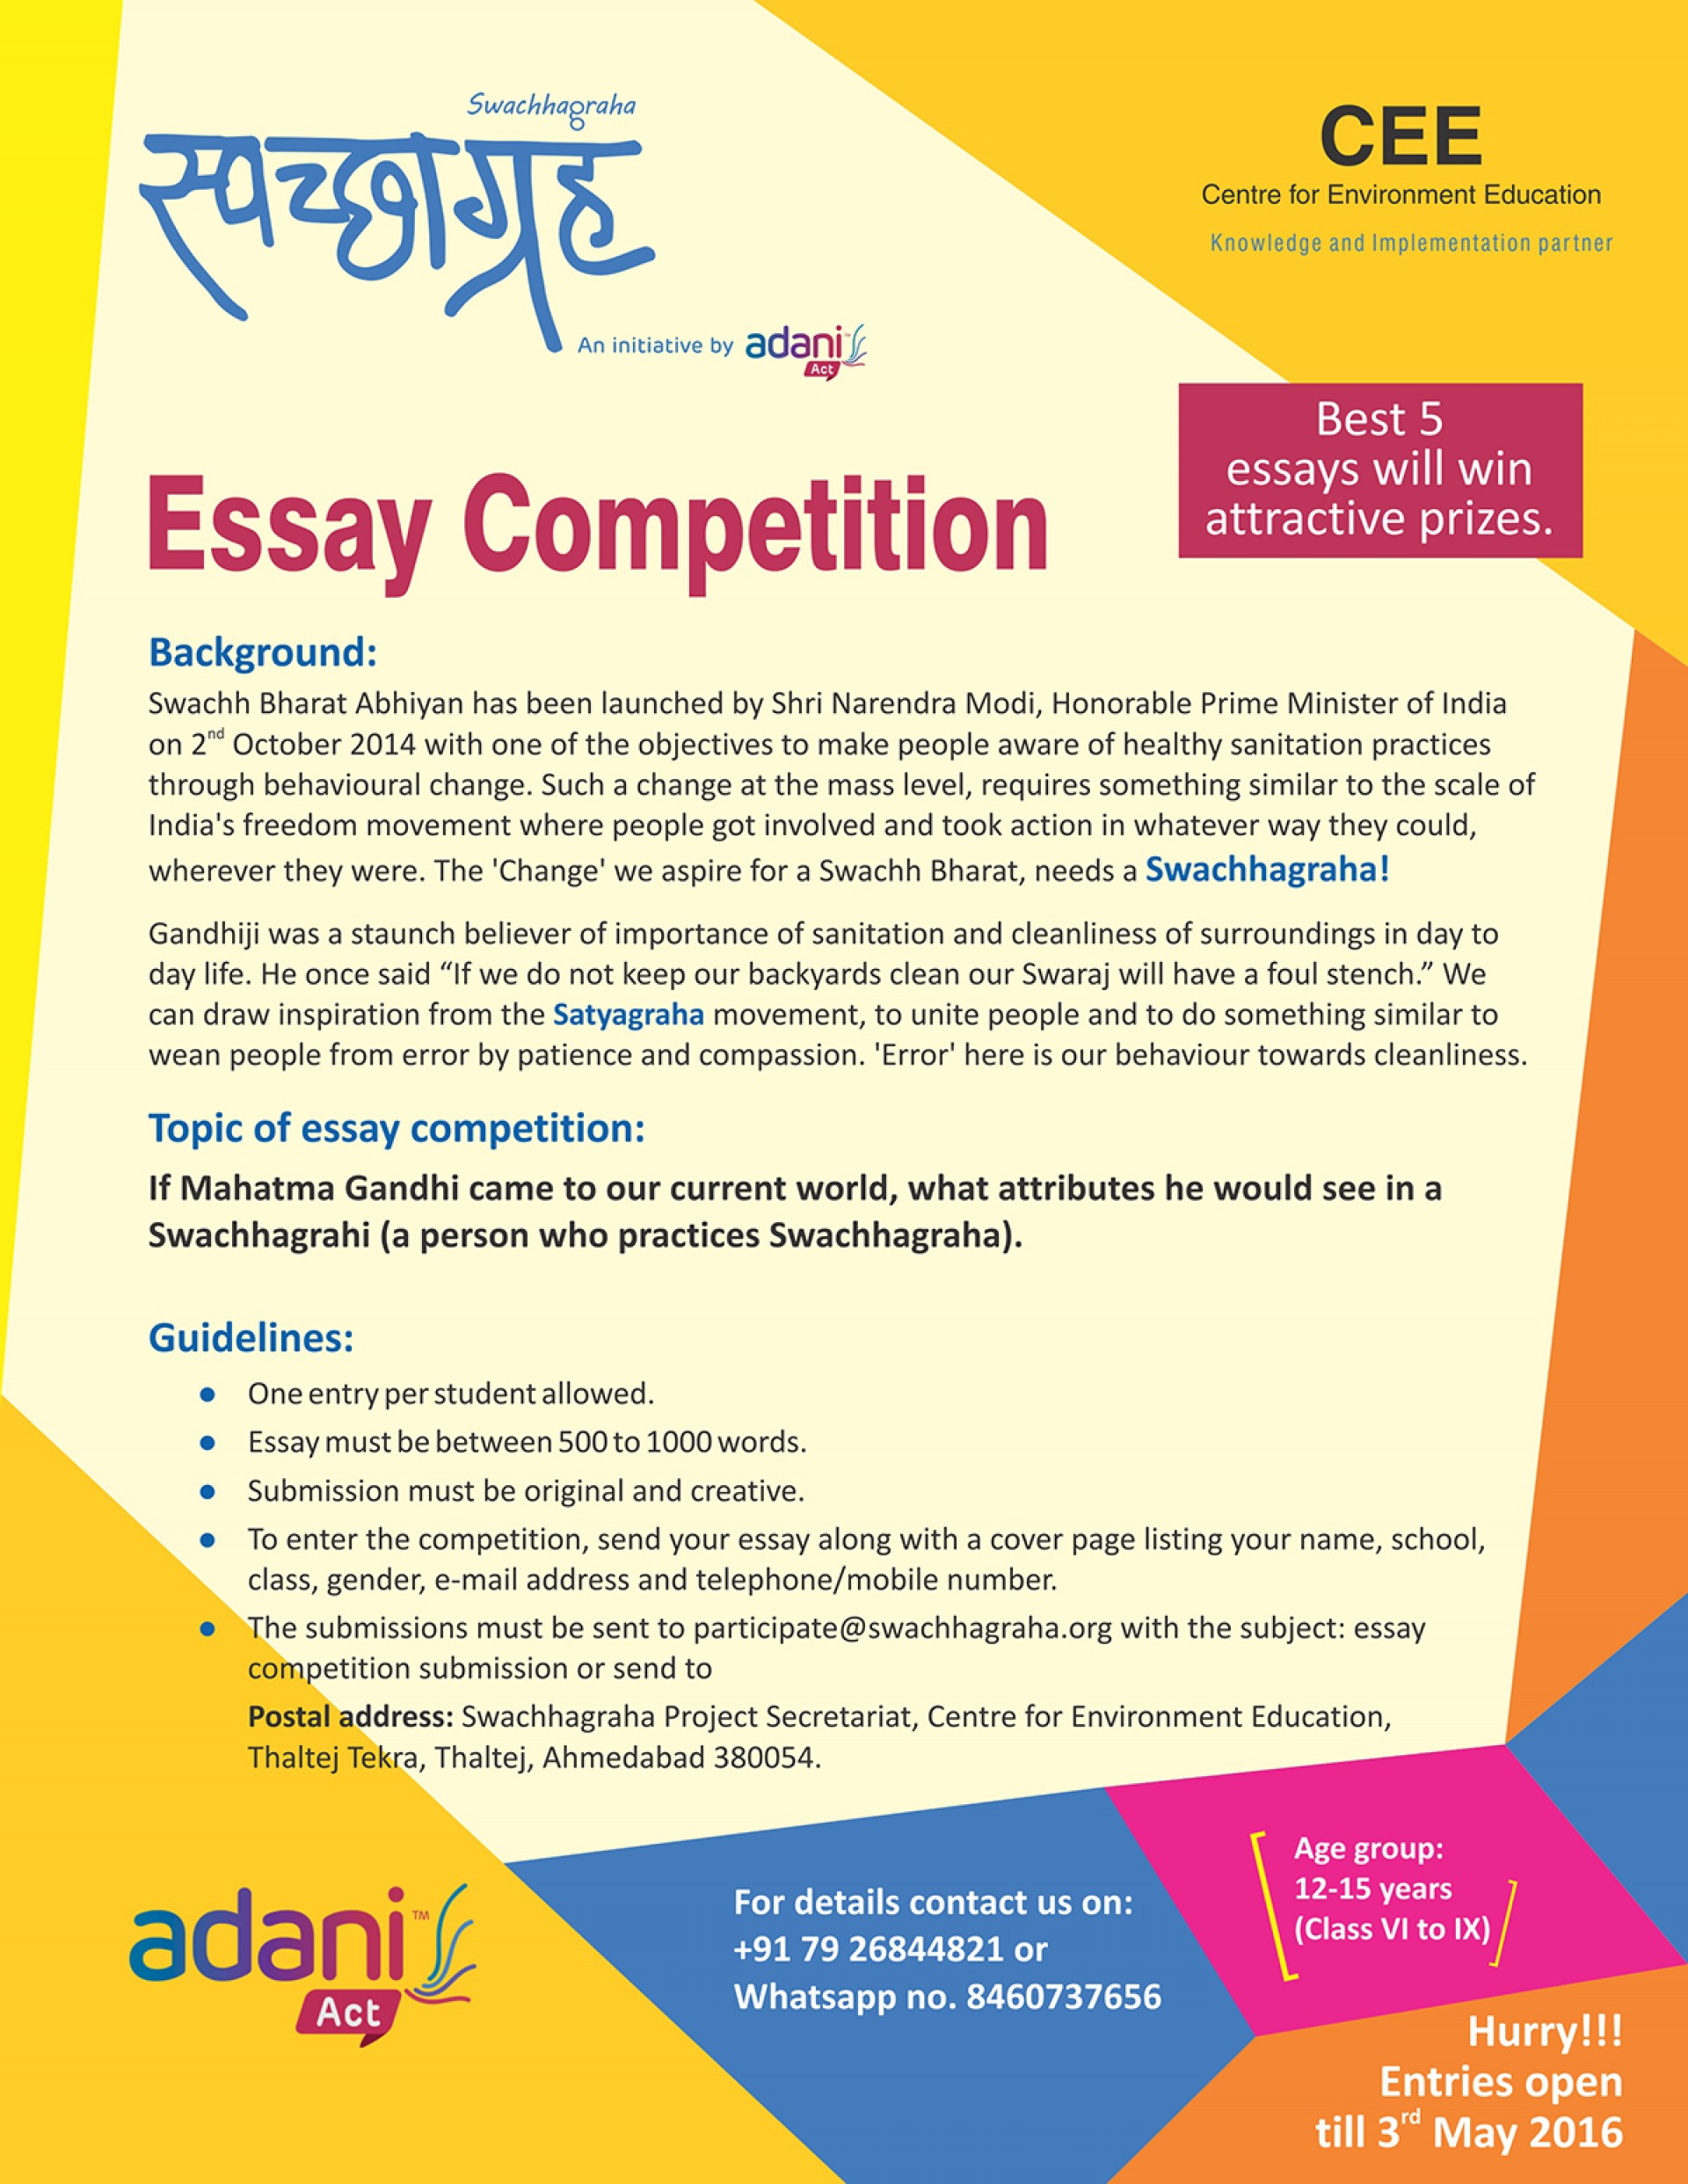 011 20180129171946essay20competition Essay About Cleanliness In School Phenomenal On Premises Persuasive Toilets 1920